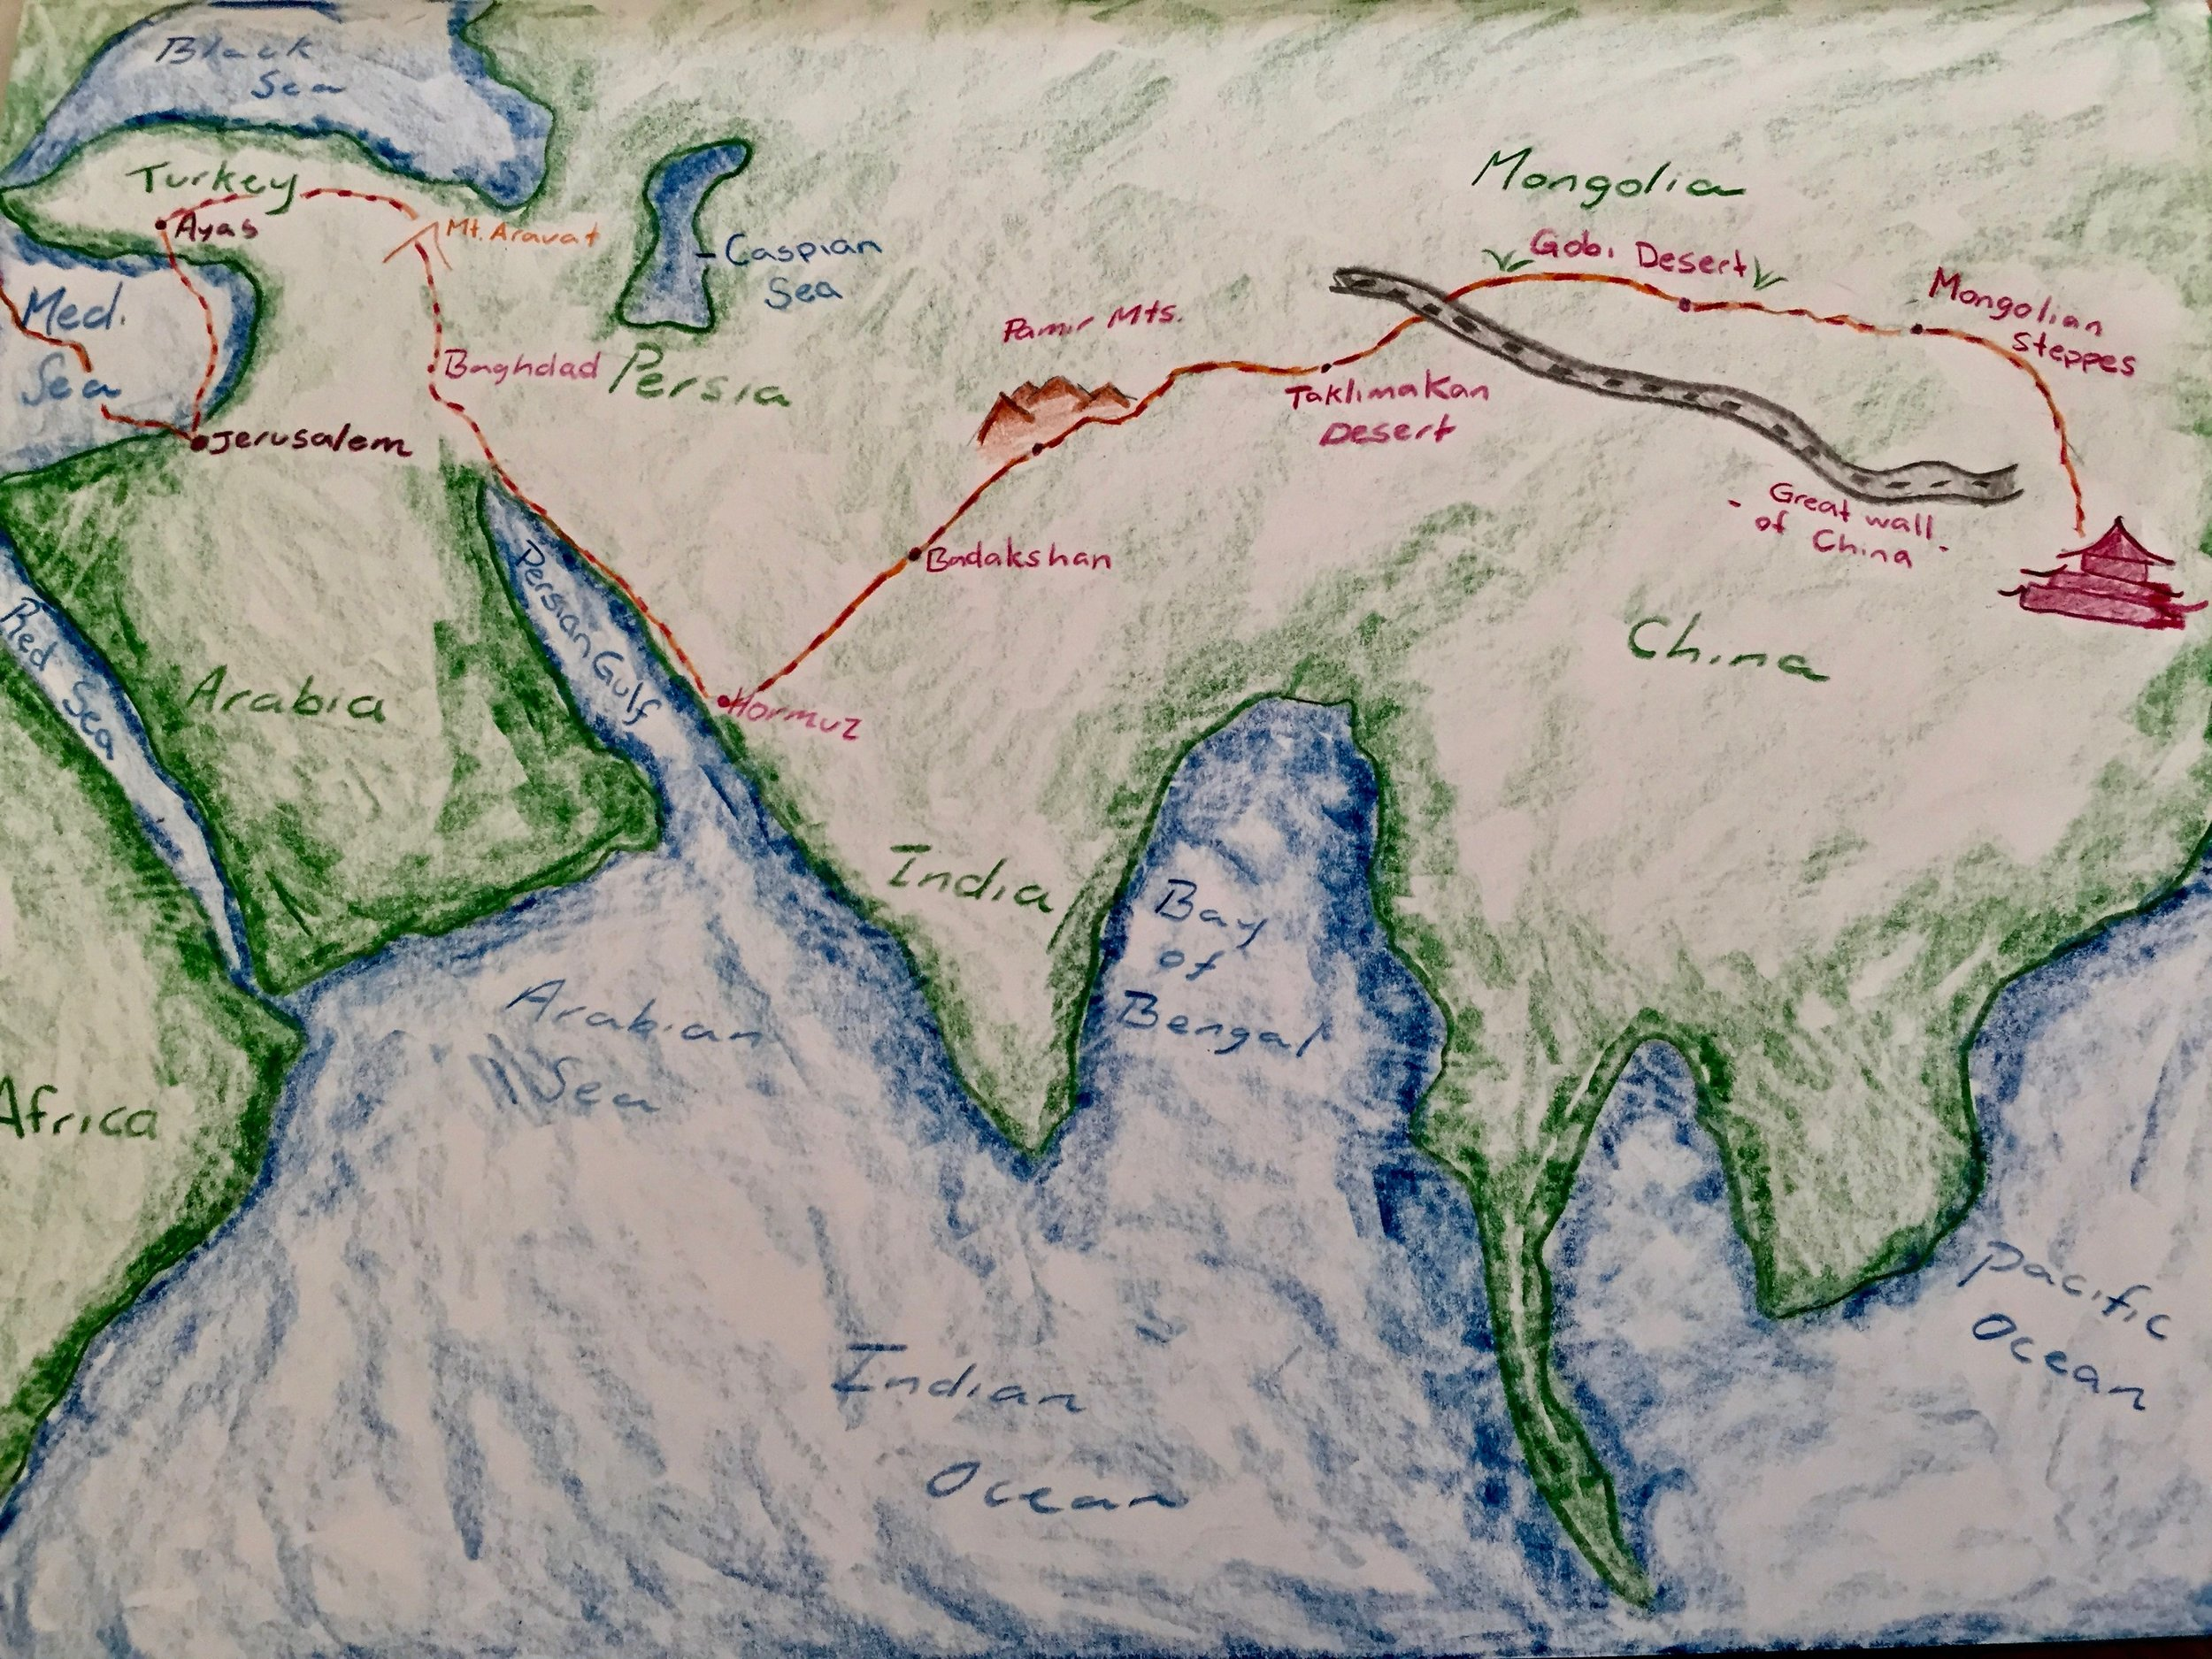 A map of the Silk Road, created during an Asian History block